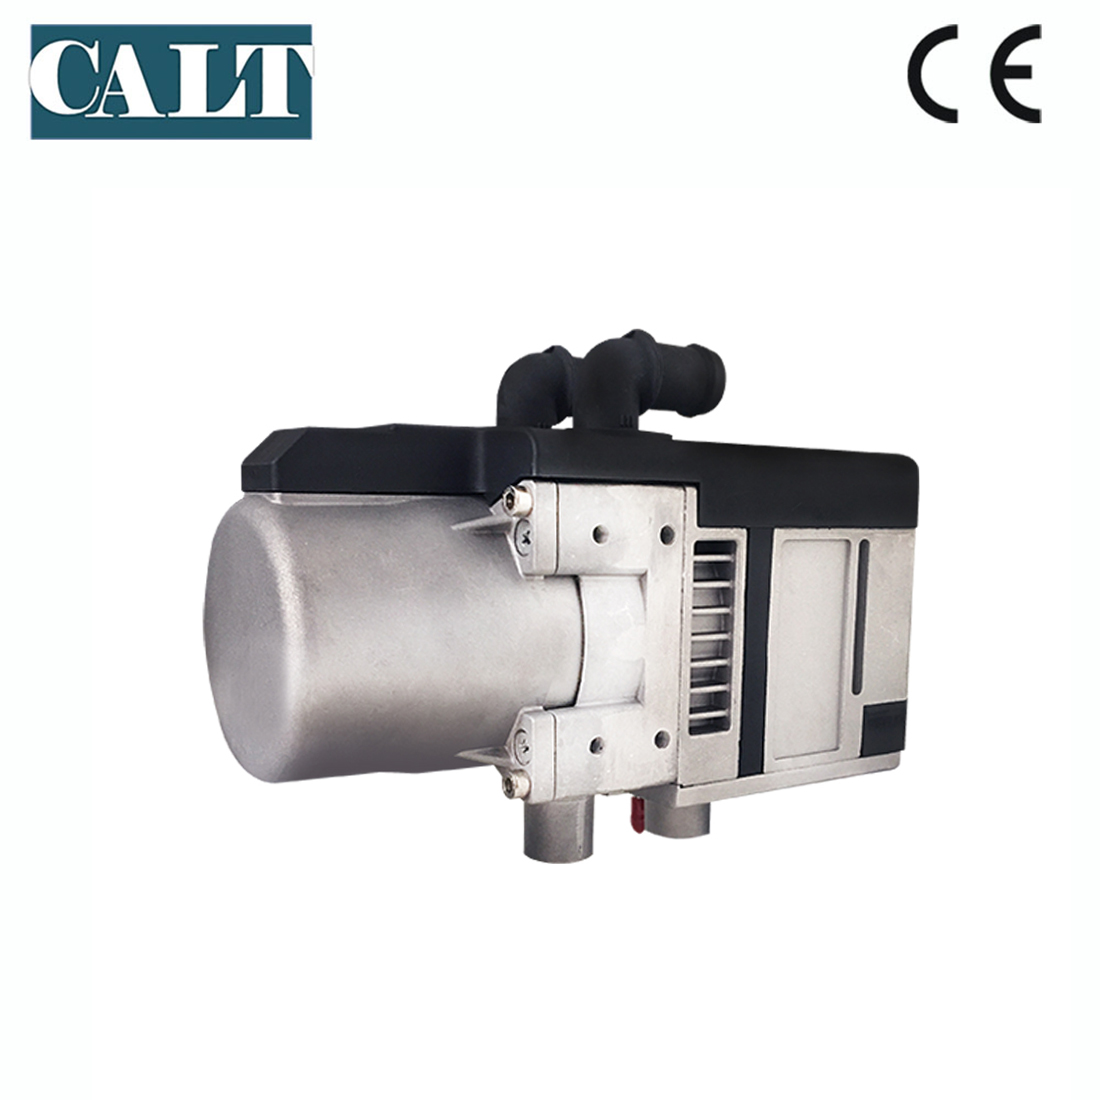 5000w 12 volt dc gasoline engine Water Heater For Car Similar to Eberspacher (not original)